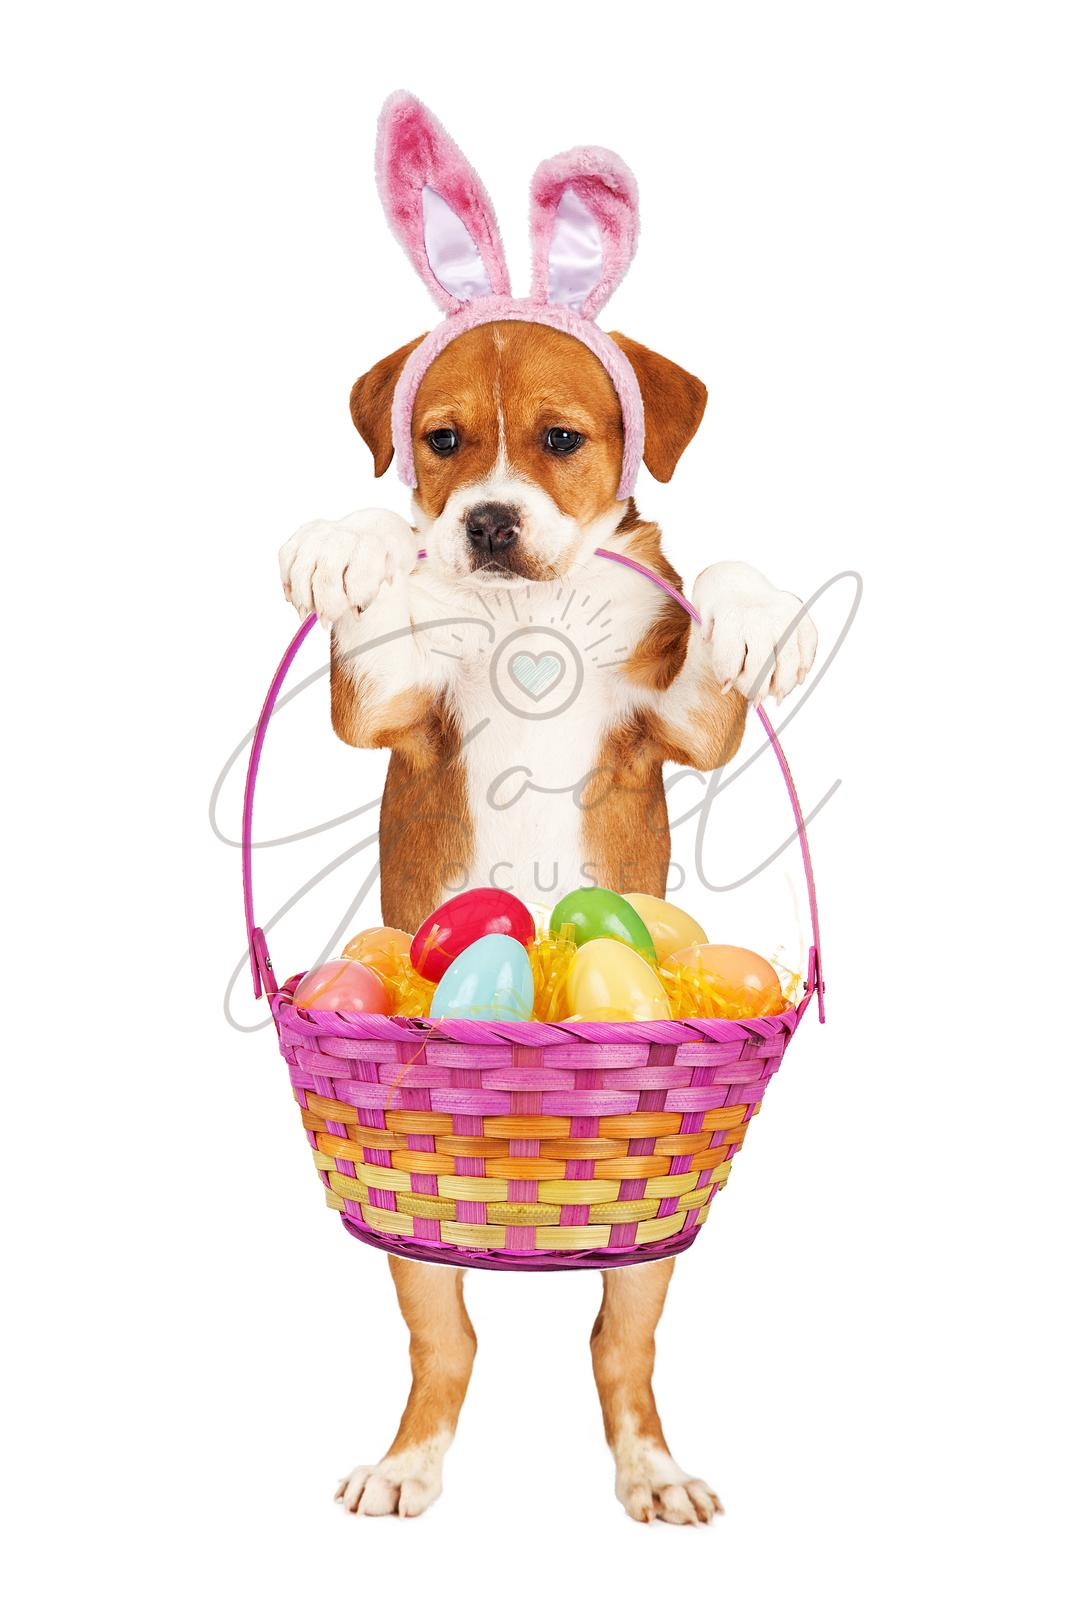 Puppy Holding Easter Basket